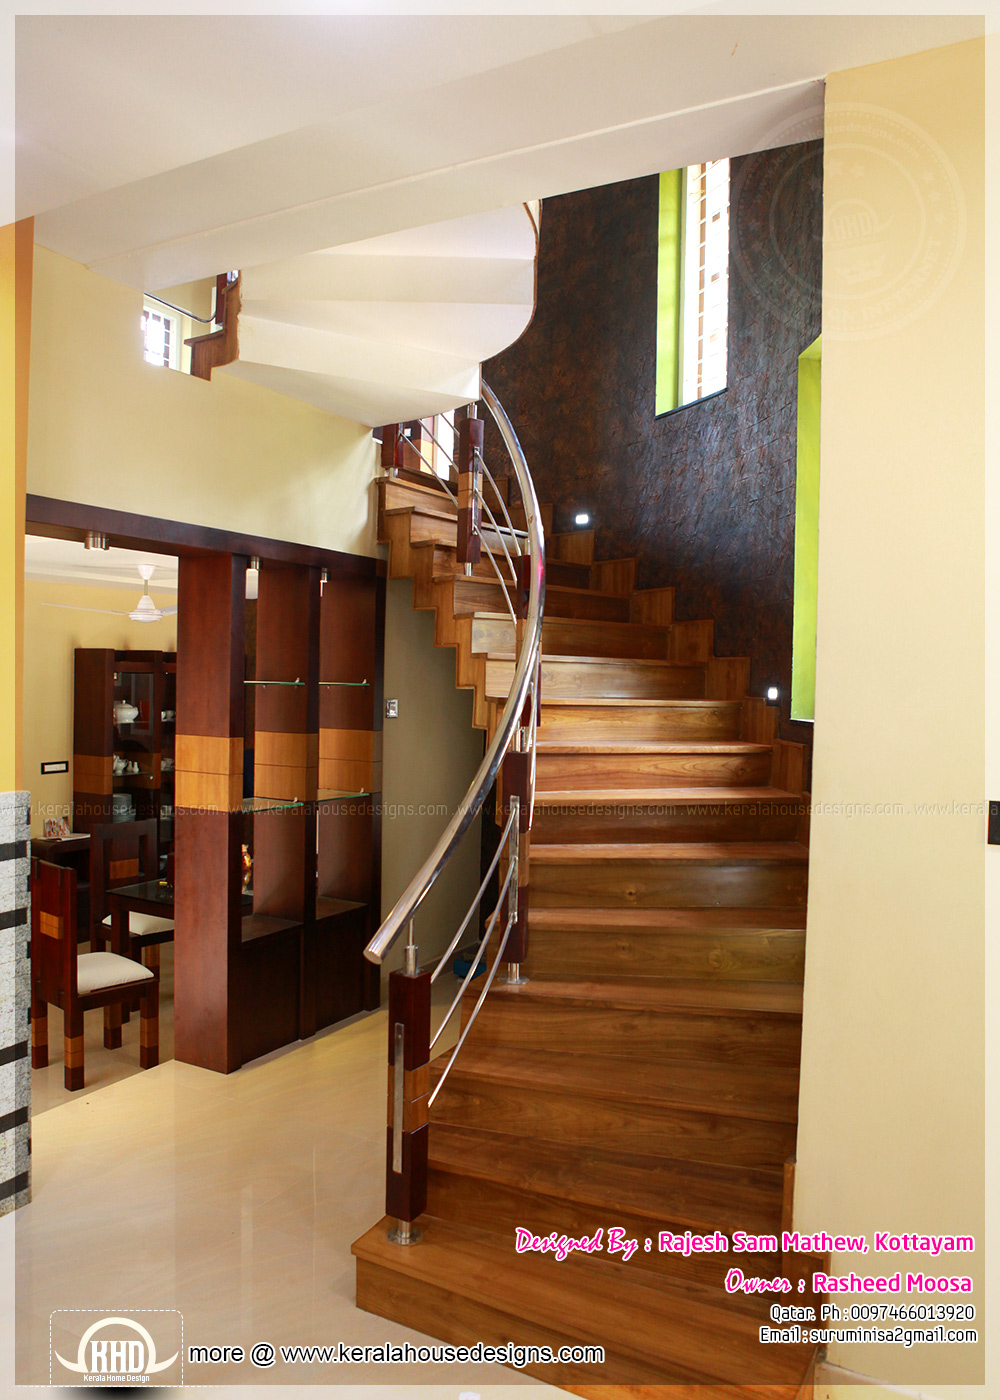 Wooden staircase for Bathroom interior design kerala